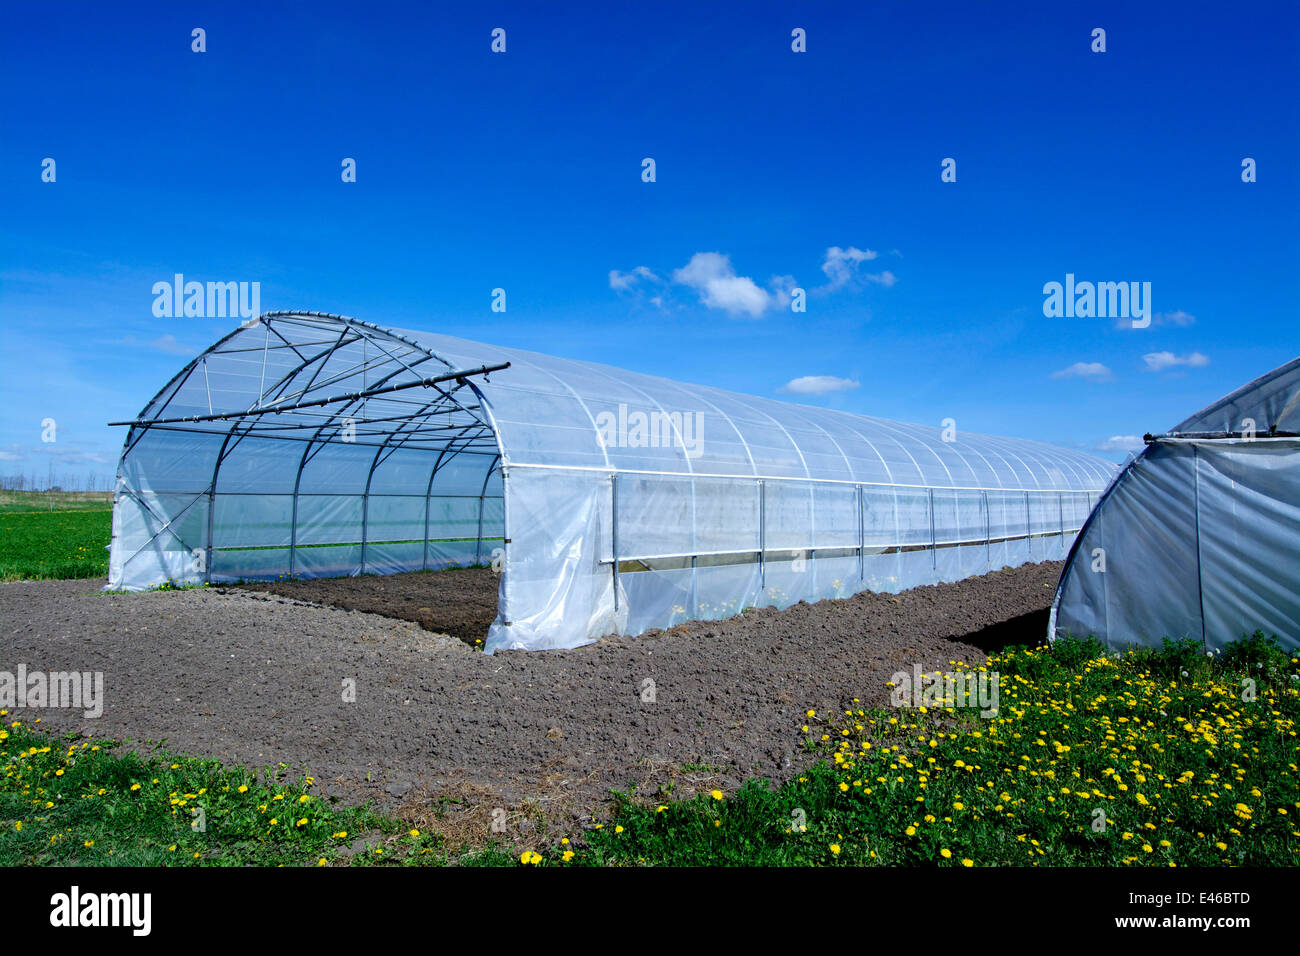 Agricultural polytunnel greenhouse / cloche in a field - Stock Image